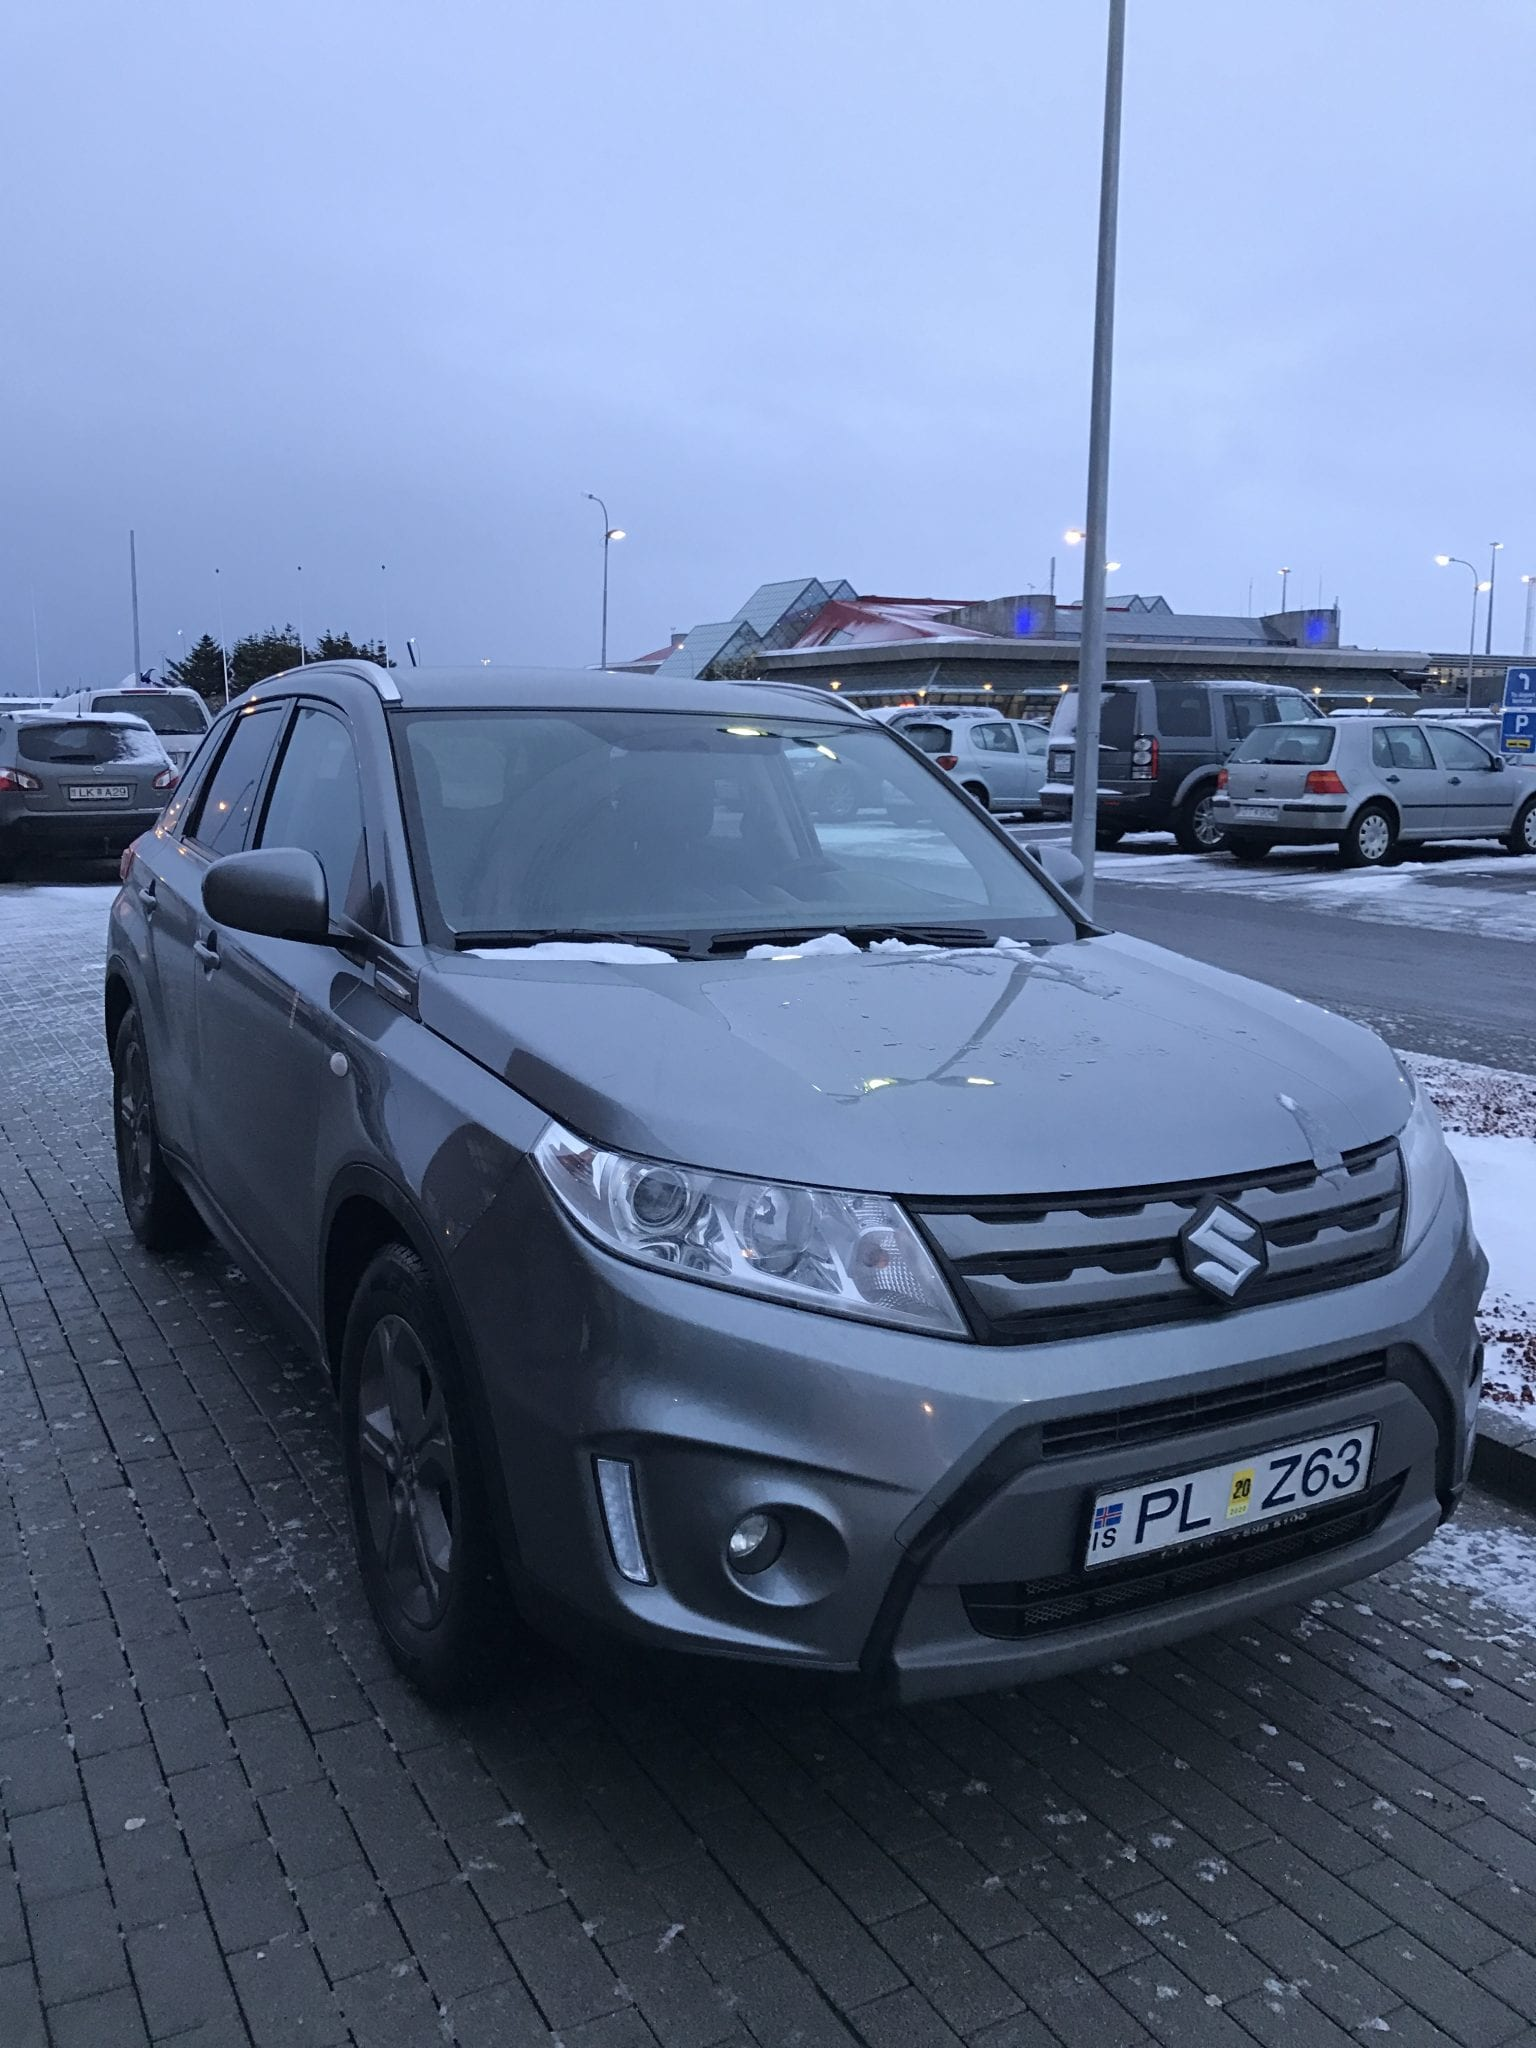 Renting a Car in Iceland. What you need to know to stay safe & have fun.